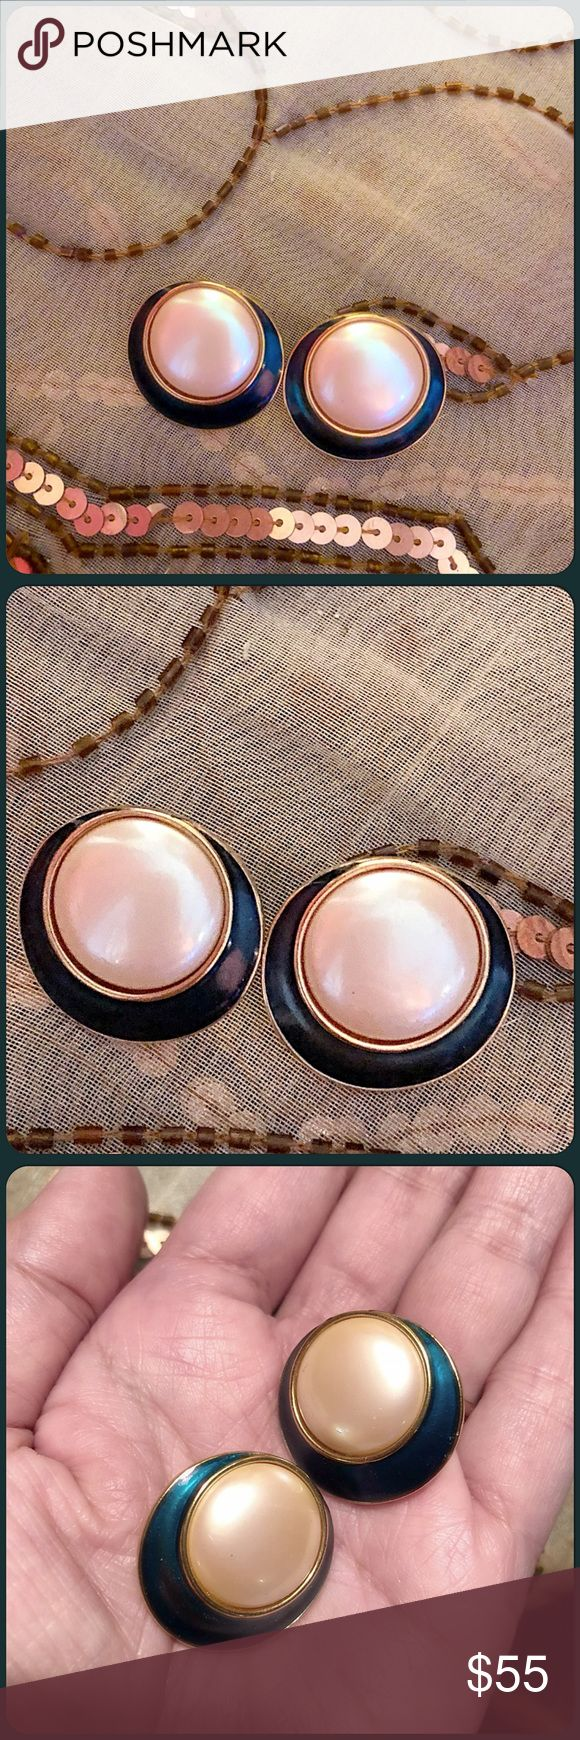 "✨VTG Rare YSL Round Pearl & Teal Enamel Earrings✨ Beautiful vintage YSL earrings from the mid 1980's. Faux pearl center with teal enamel border and gold trim. Truly statement earrings which still are in vogue today! Hallmarked YSL, post backing. 1"" diameter. In great condition and stored away. Pls. only reasonable offers, Thxs. Vintage Jewelry Earrings"